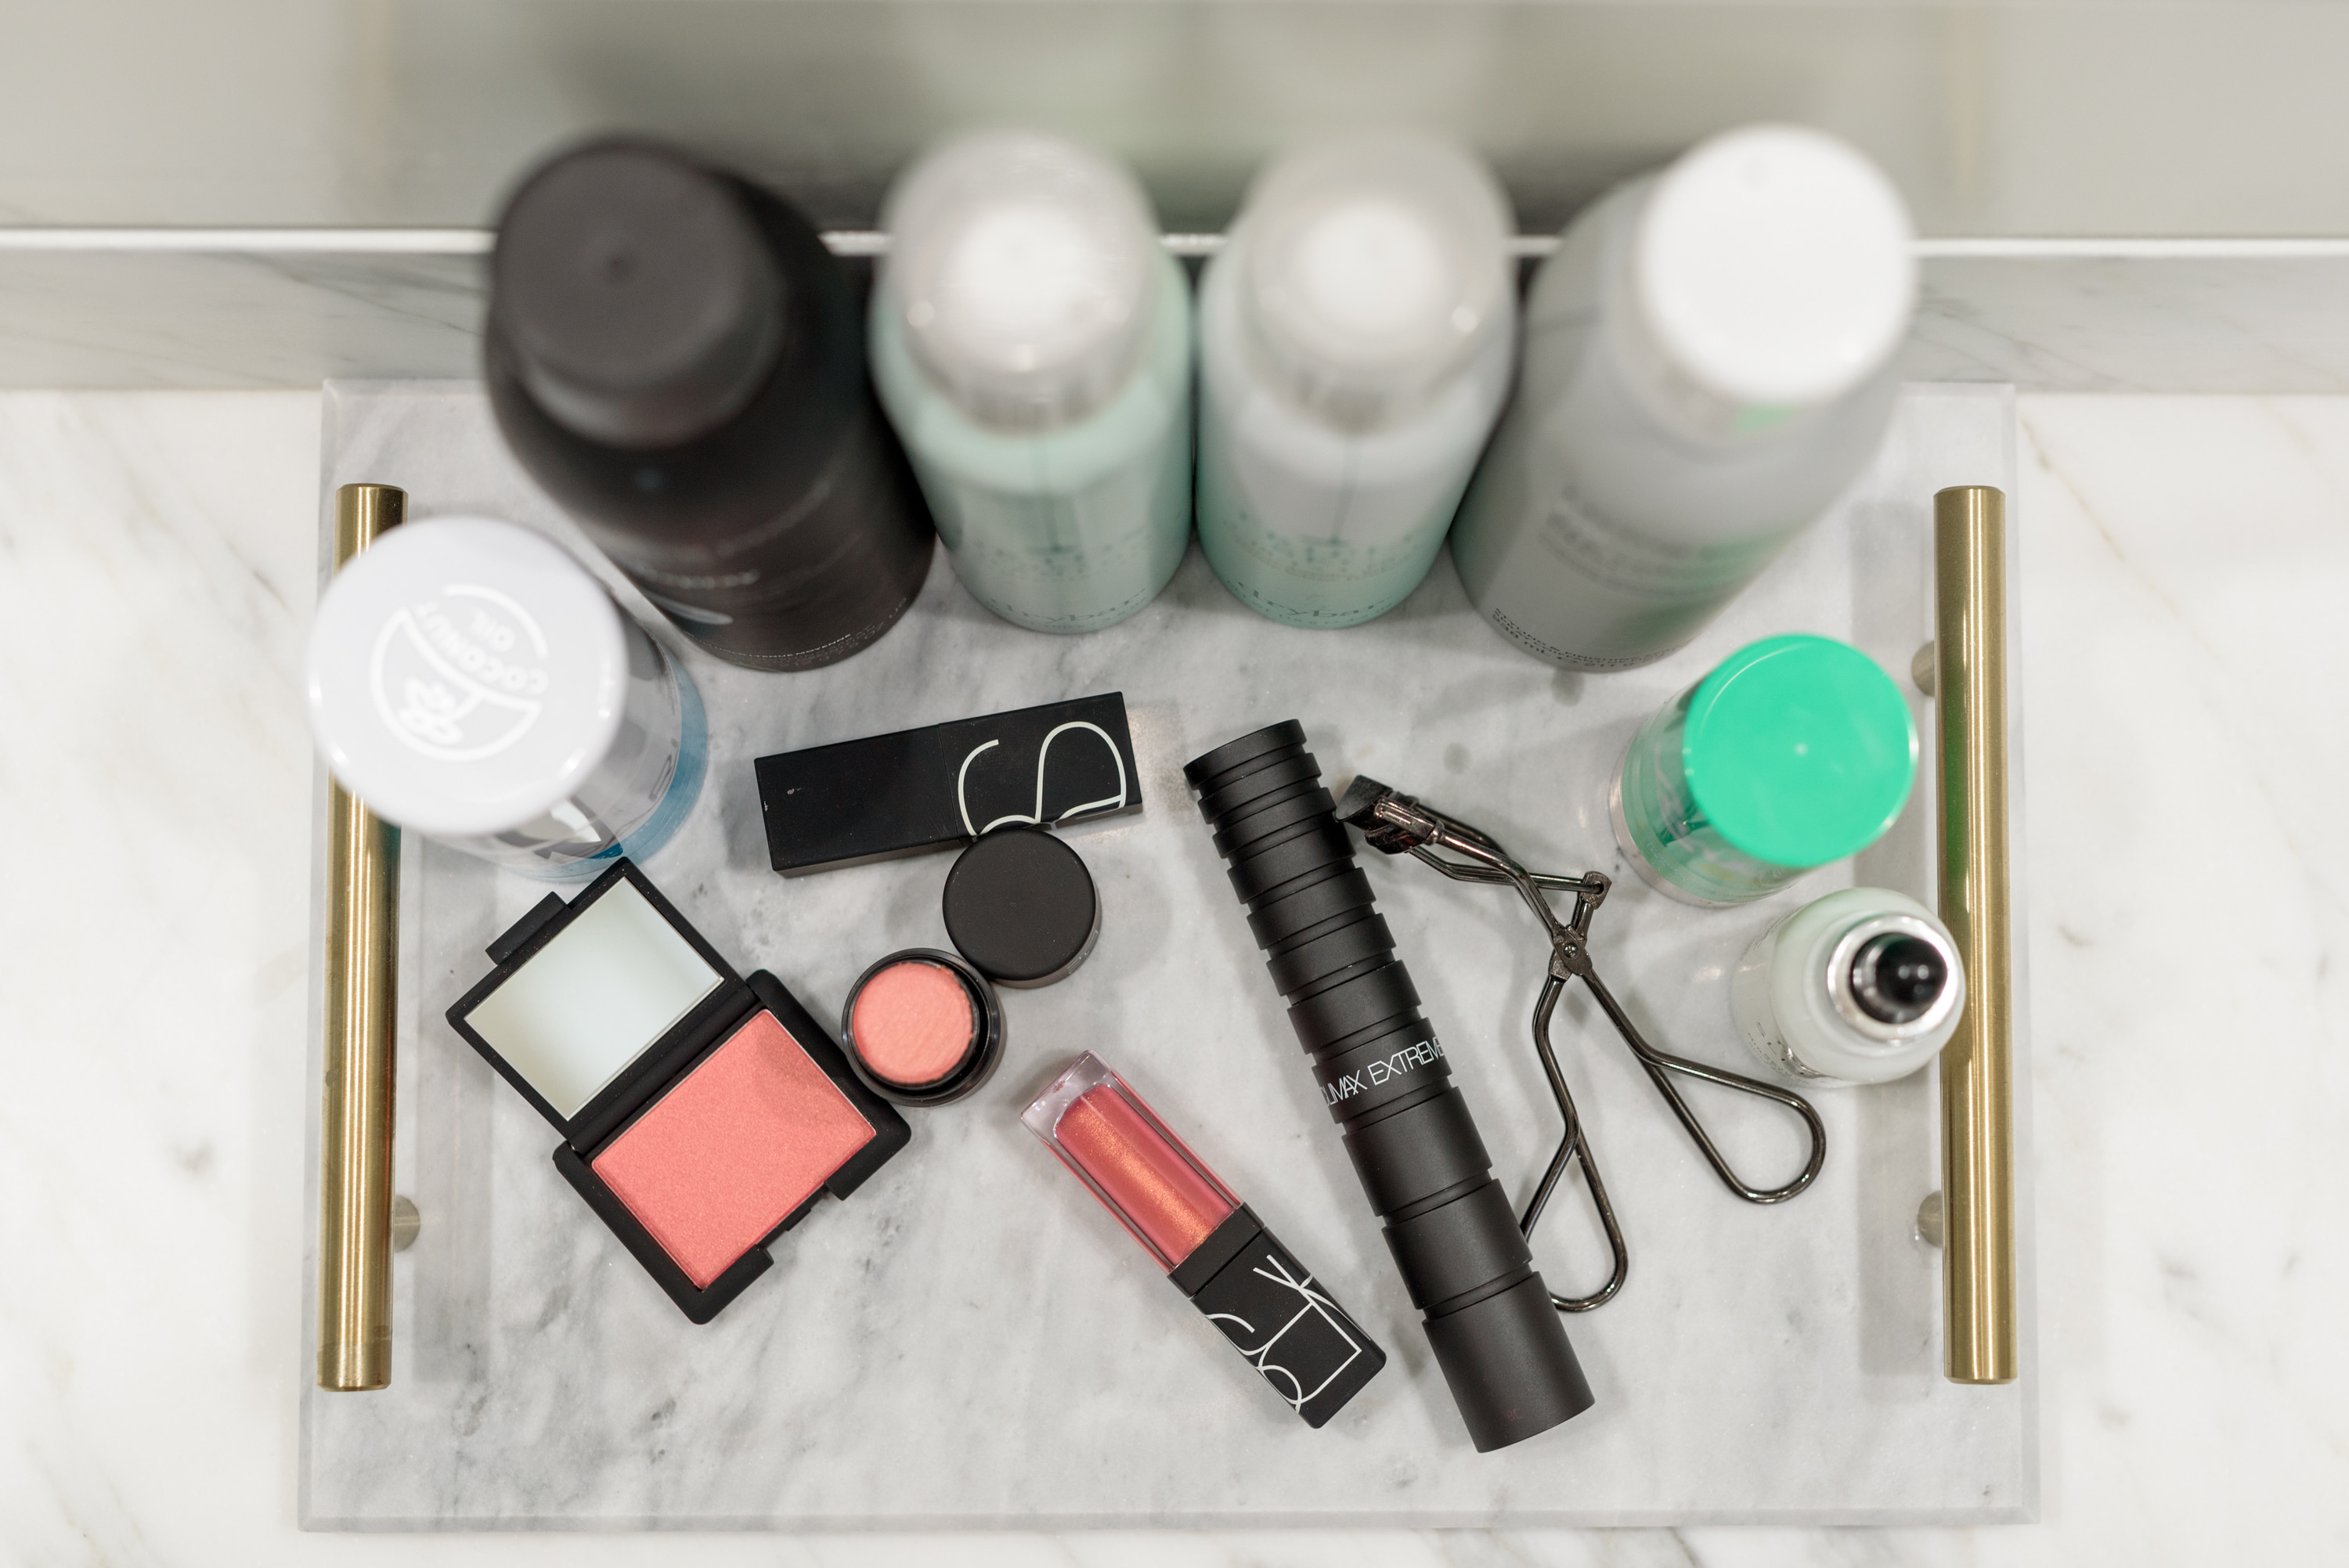 Fall Beauty by popular Houston beauty blog, Fancy Ashley: image of Living Proof flex hairspray, Living Proof dry shampoo, blush, Nars lipgloss, eyelash curler, Dry Bar Detox dry shampoo, Drybar Triple Sec, Tan-Luxe sleep oil,CLEAN BEAUTY POWDER SPF, and NARS CLIMAX EXTREME MASCARA.